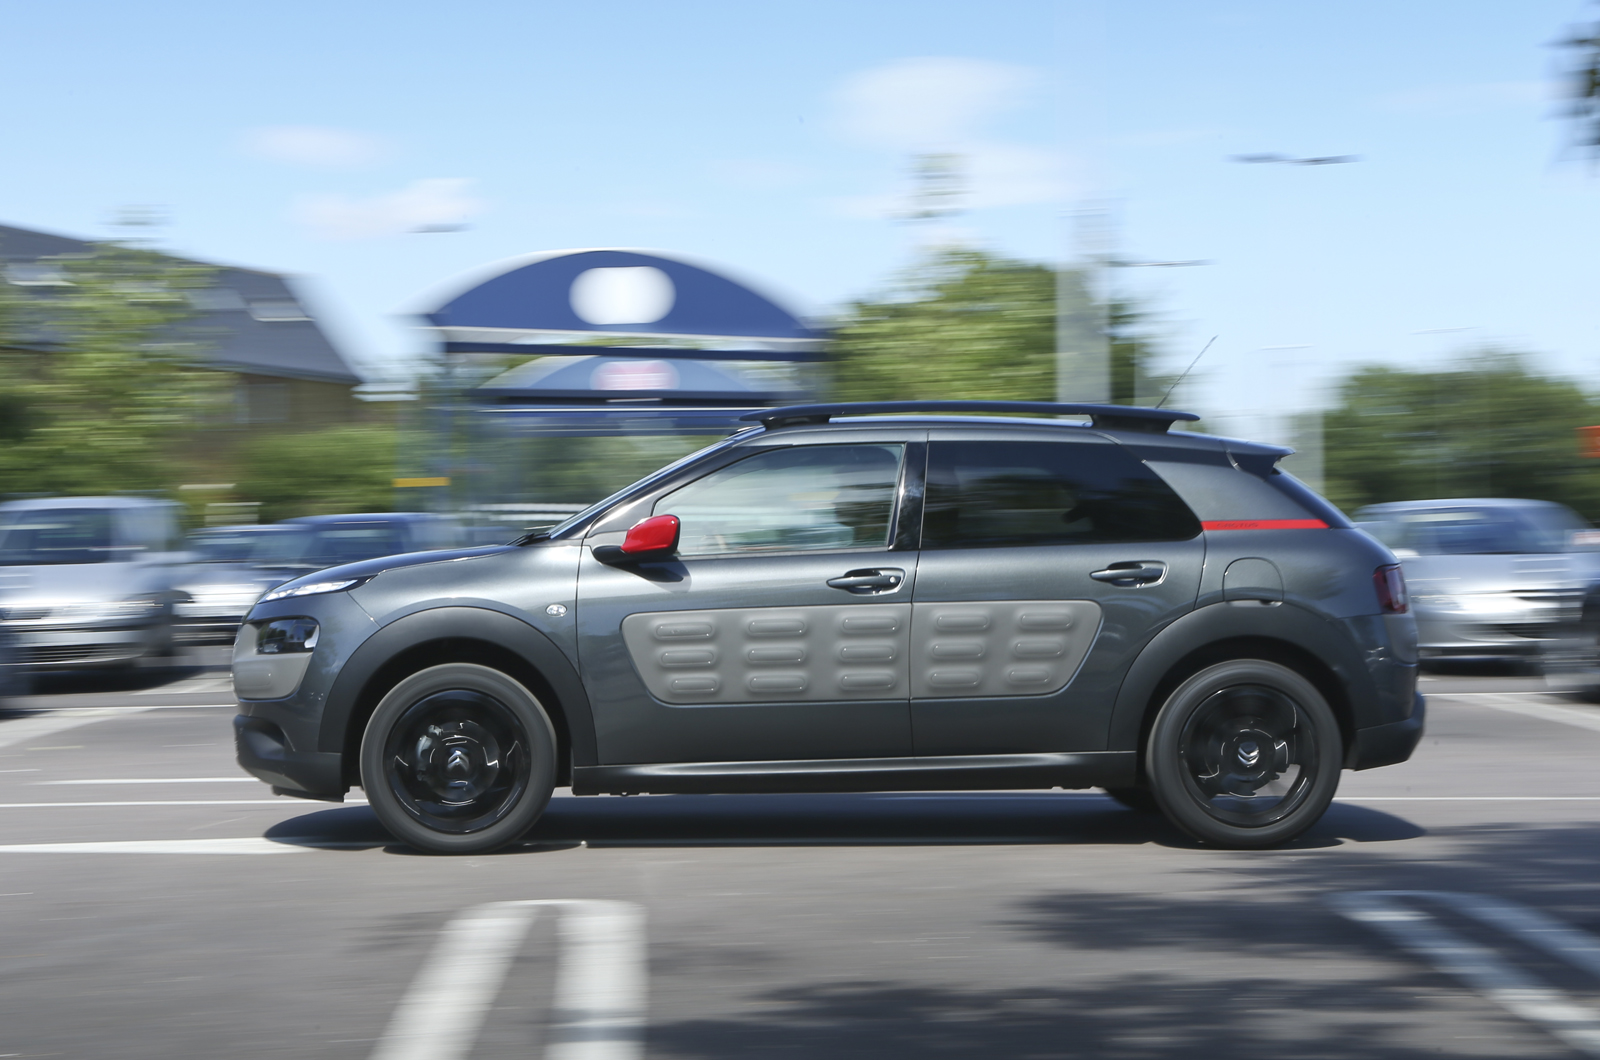 citroen c4 cactus bluehdi 100 flair uk first drive. Black Bedroom Furniture Sets. Home Design Ideas